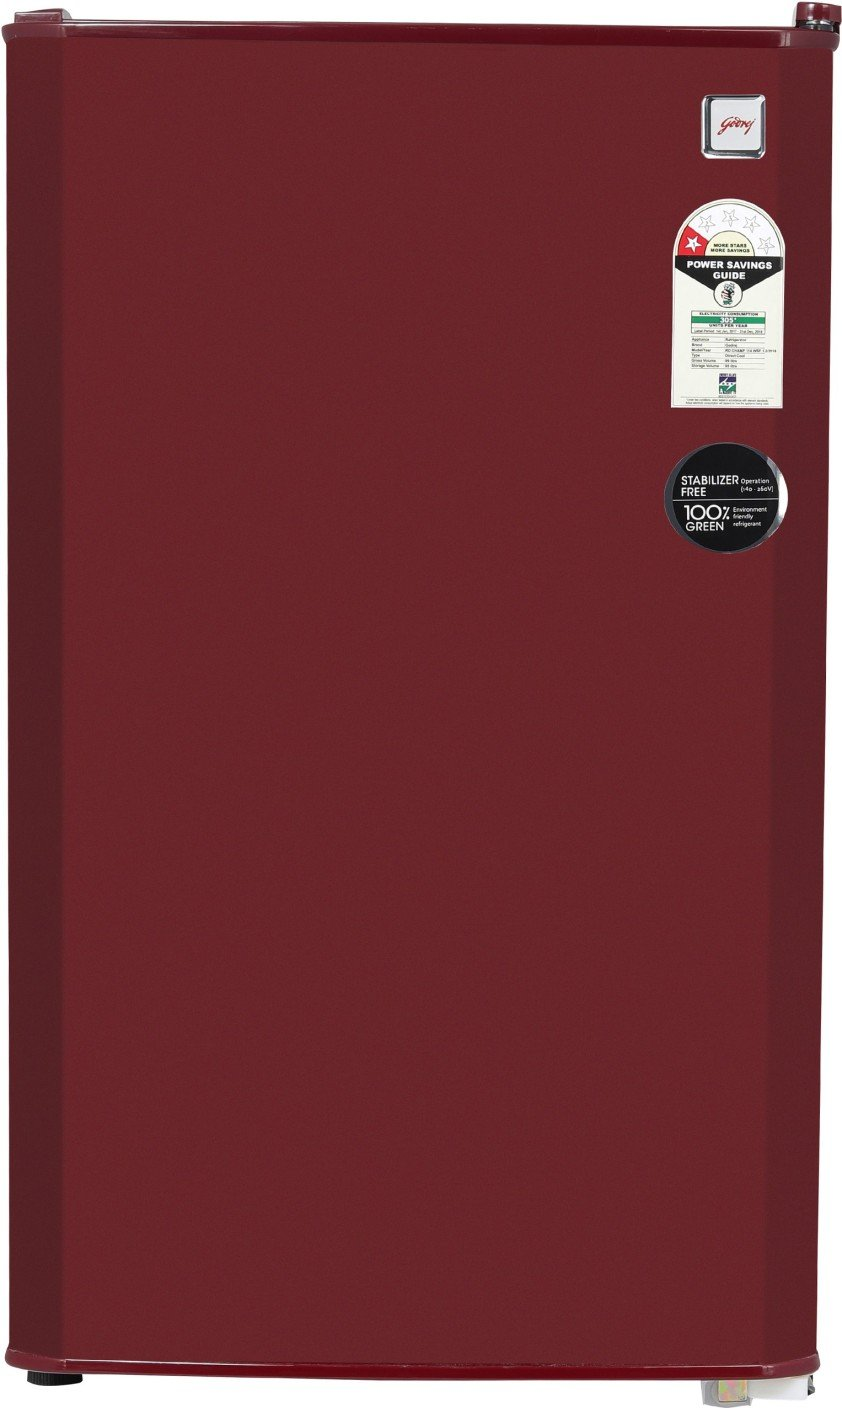 Godrej 99L 1 Star Direct Cool Single Door Refrigerator